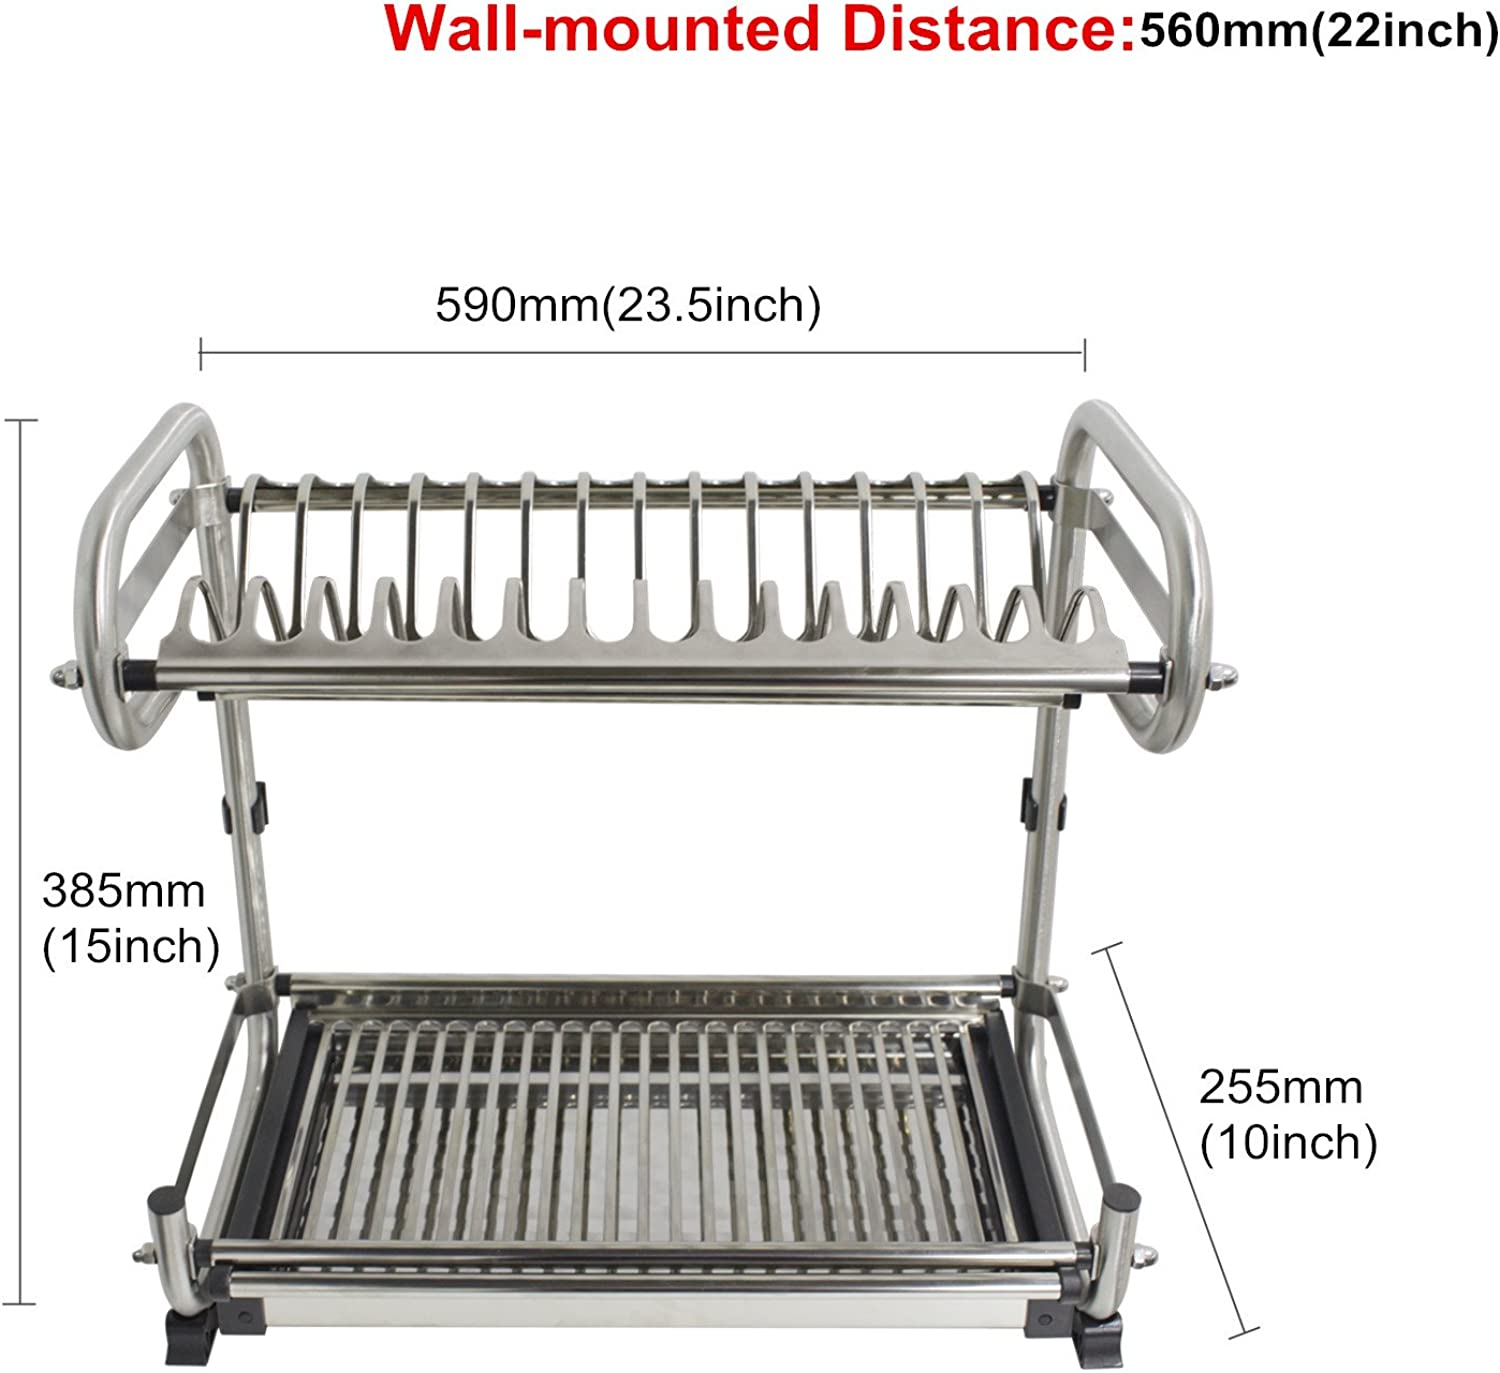 Probrico 2-Tier Stainless Steel Dish Drying Dryer Rack 590mm(23.5 ) Drainer Plate Bowl Storage Organizer Holder Wall Mounted Distance 560mm(22 )